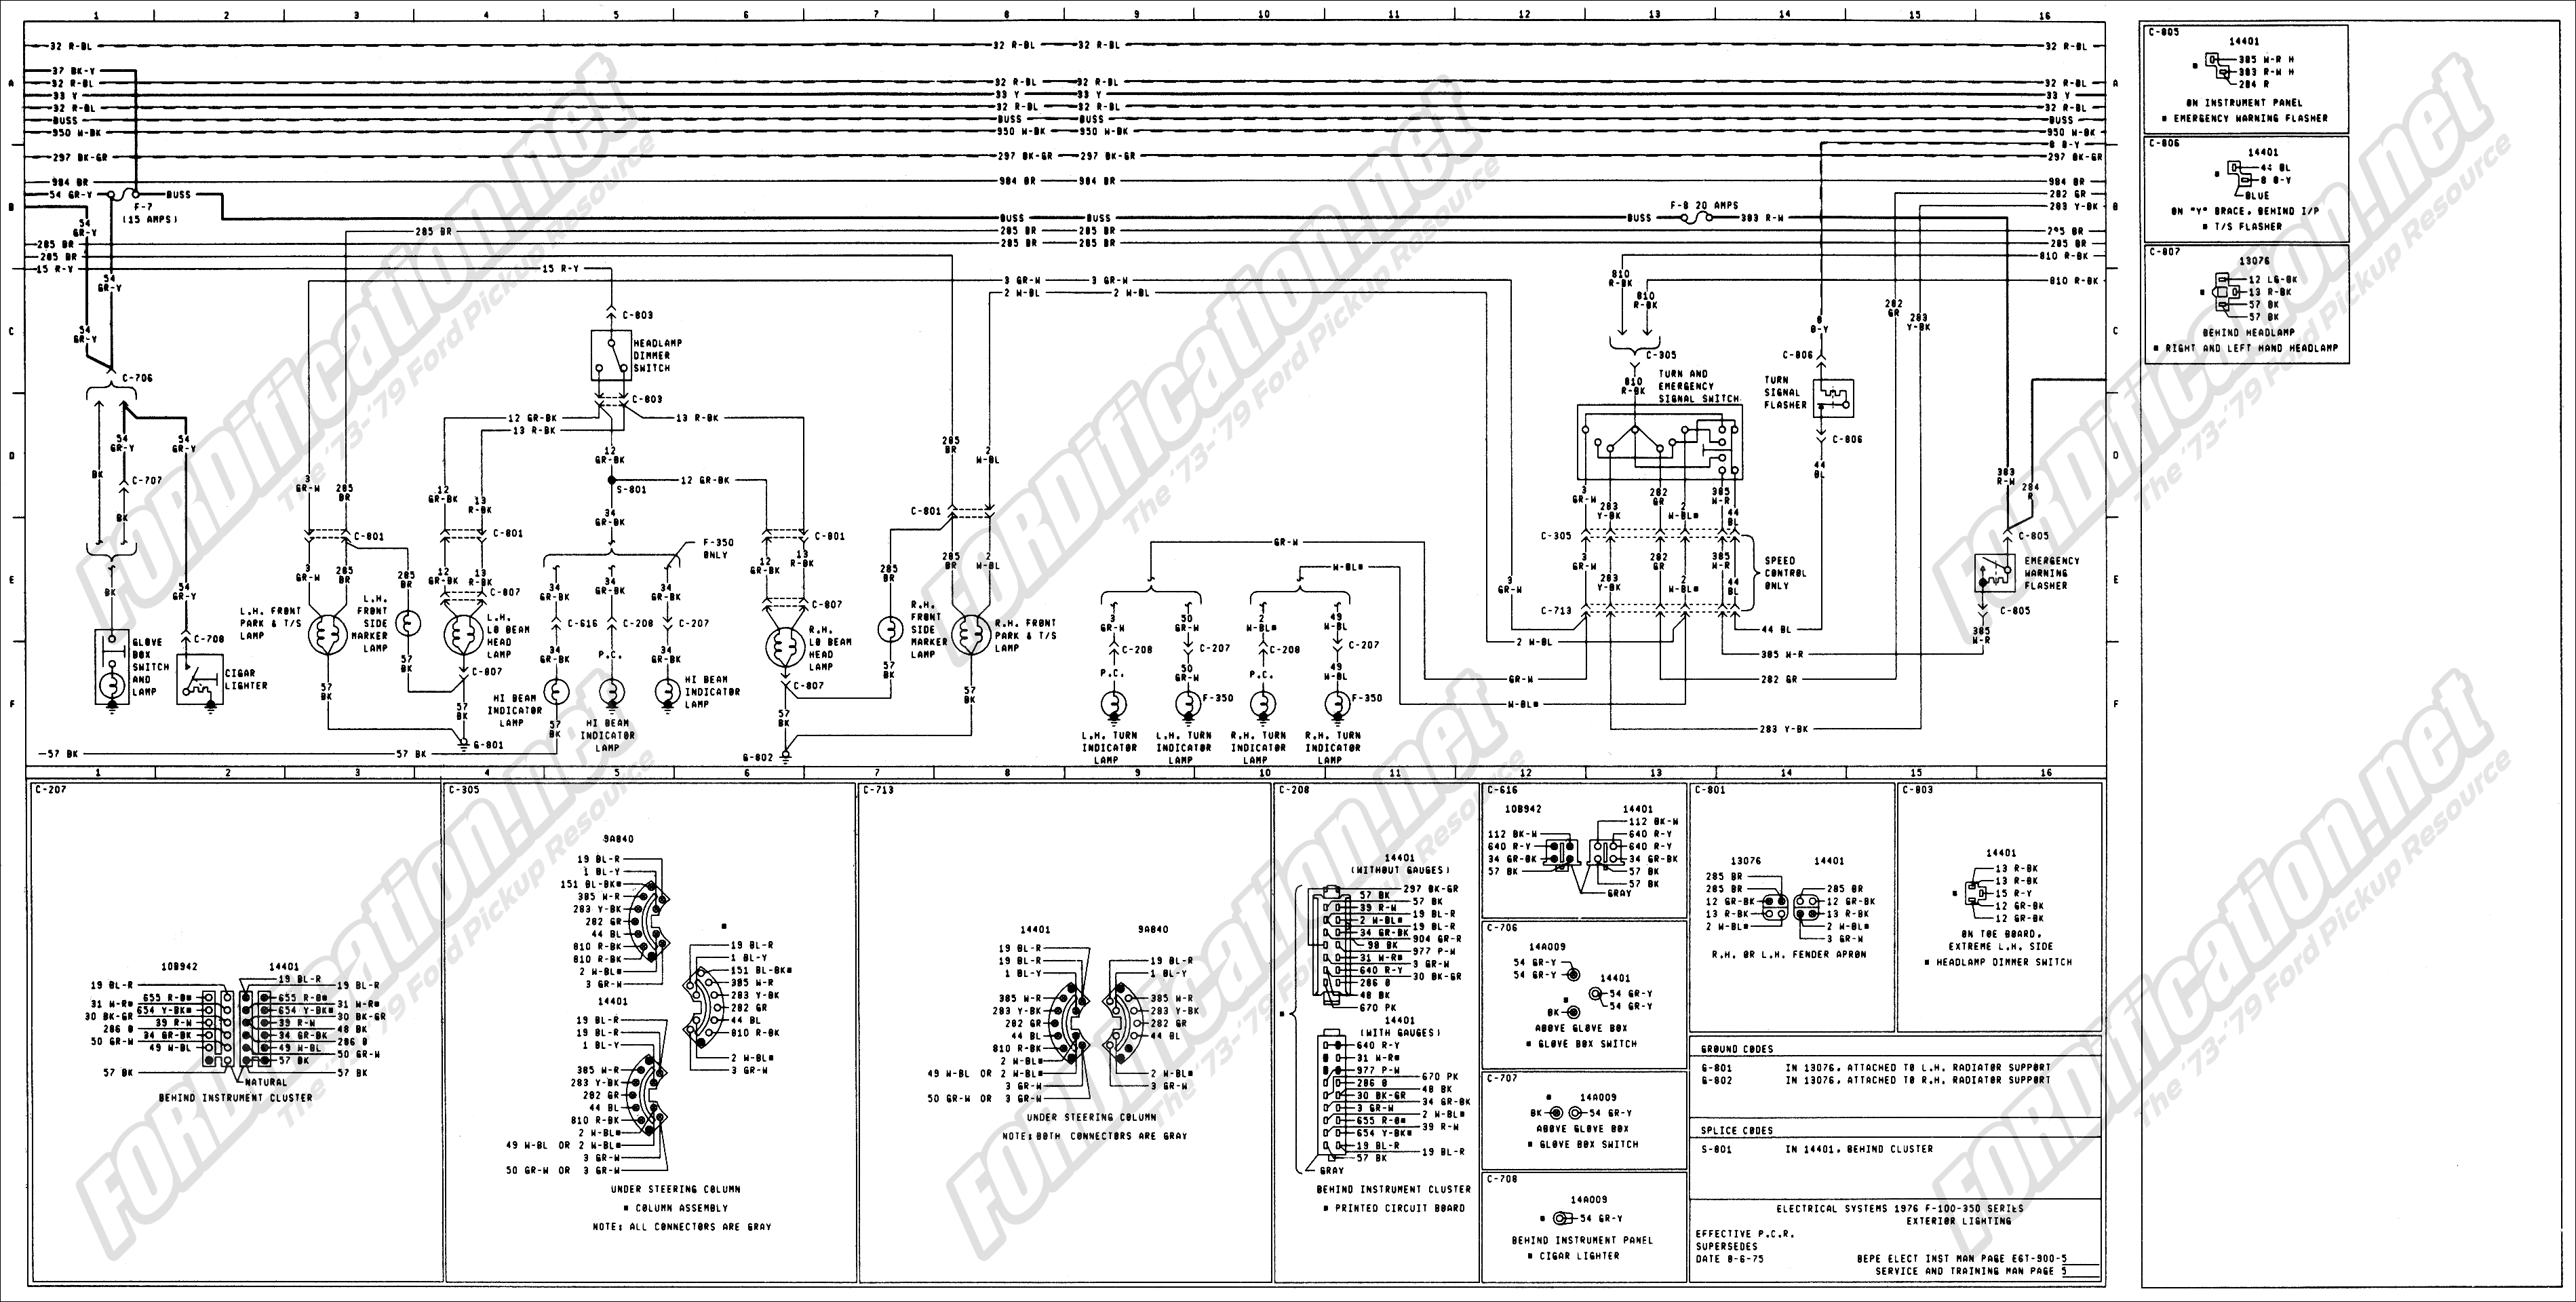 wiring_76master_5of9 1973 1979 ford truck wiring diagrams & schematics fordification net 1978 ford f150 wiring diagram at bayanpartner.co